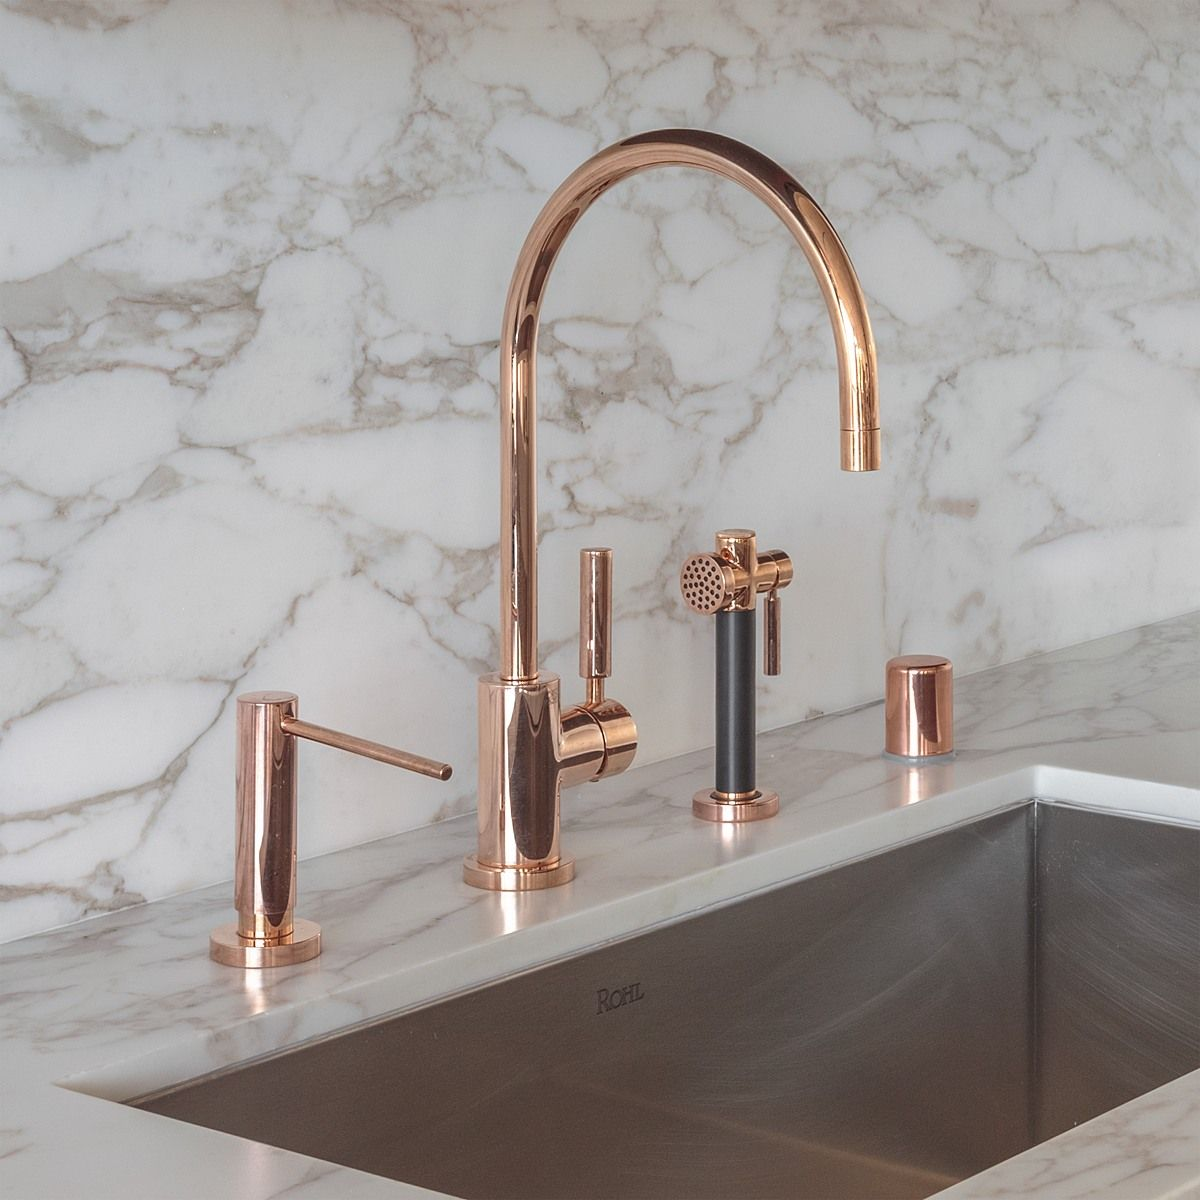 Rose Gold Faucet In A Pacific Heights Kitchen By Richard Felix Ashman Of Handel Architects Photo By David Livingst Rose Gold Kitchen Gold Faucet Gold Kitchen